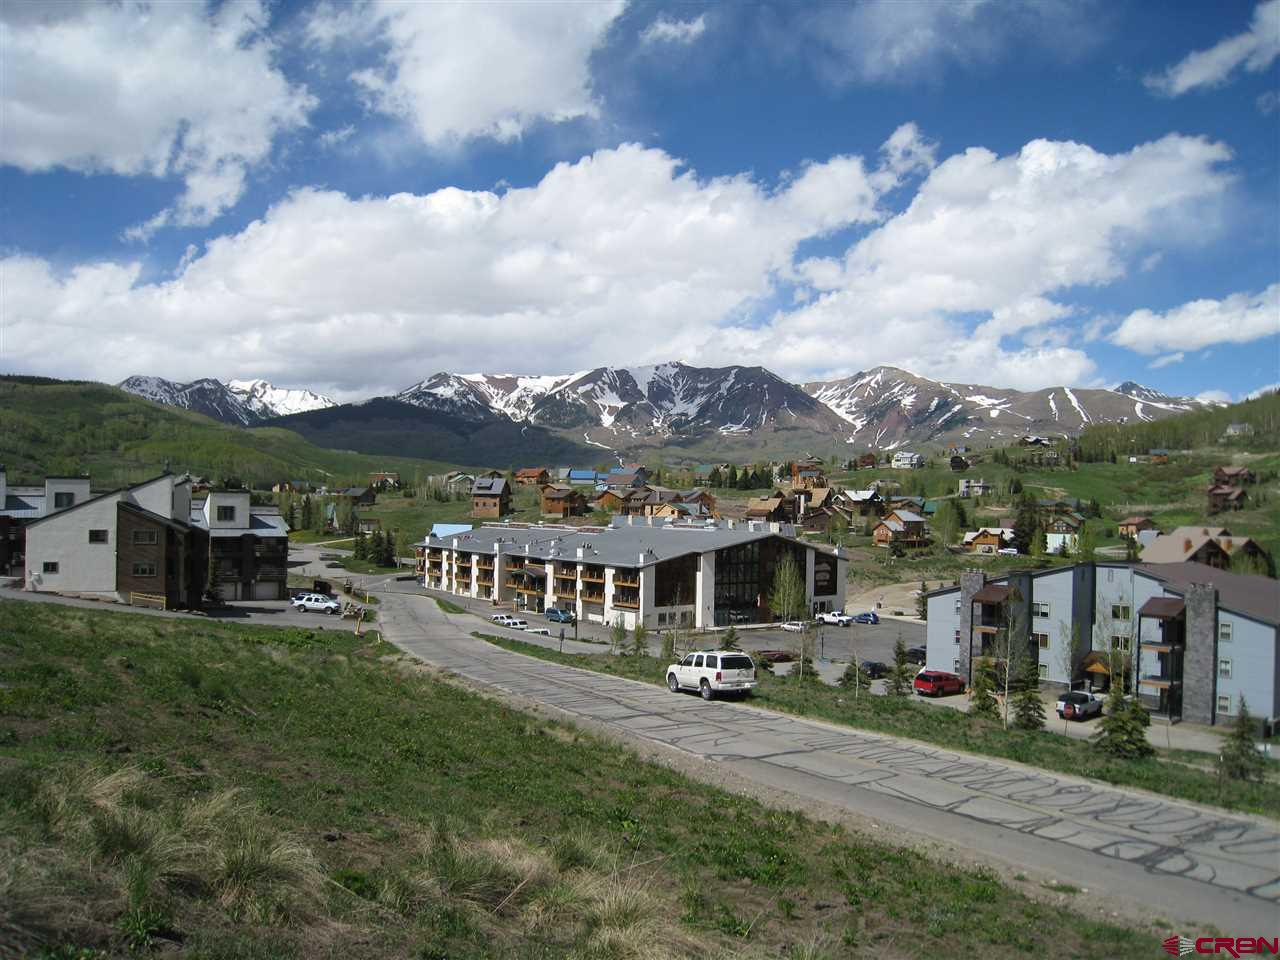 MLS# 757036 - 8 - 17 Marcellina Lane, Mt. Crested Butte, CO 81225